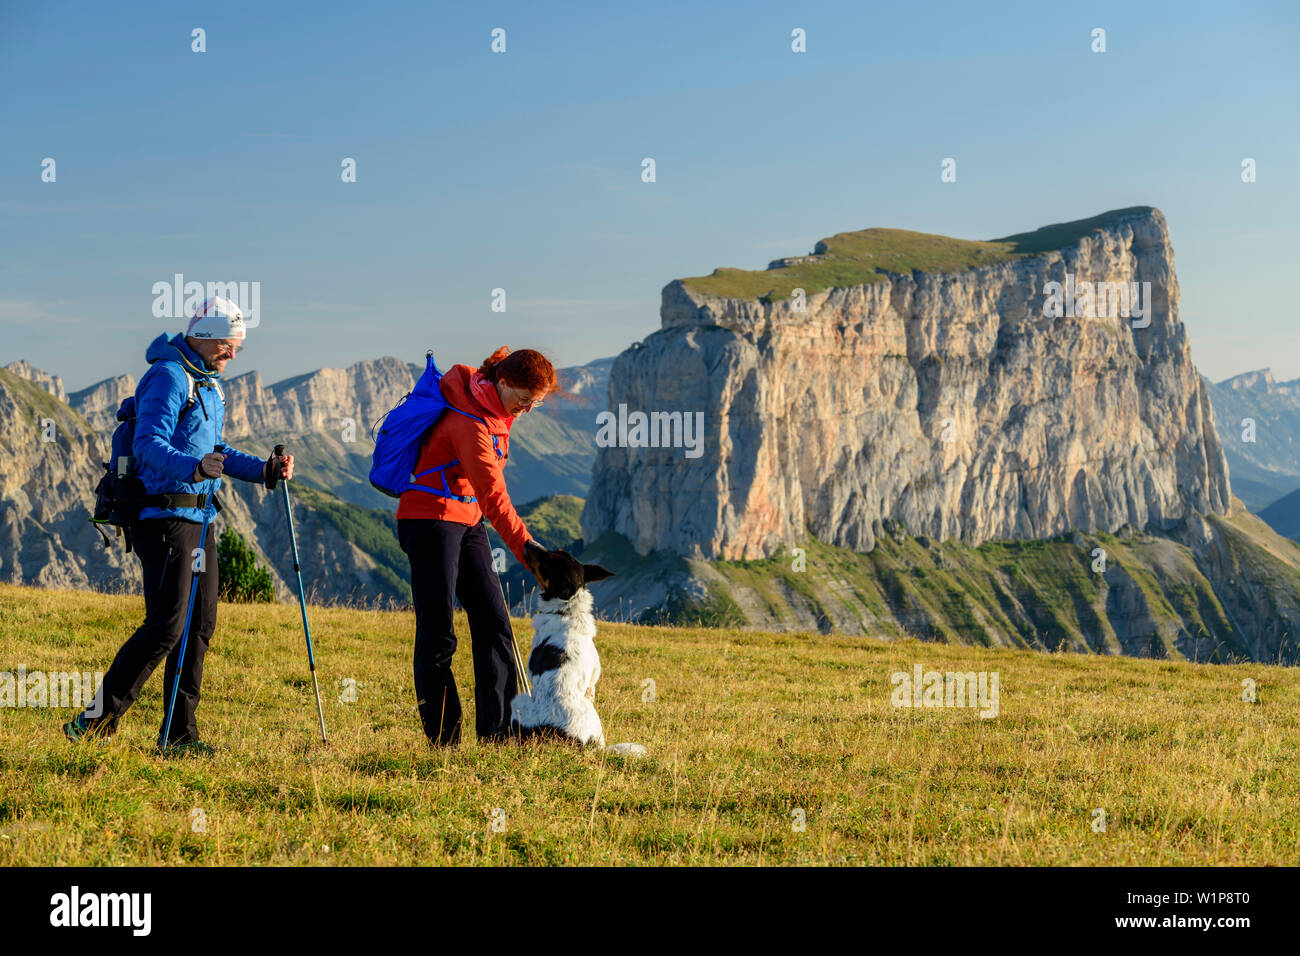 A man and a woman with dog when walking on meadow with Mont Aiguille in the background, from the Tête Chevalier, Vercors, Dauphine, Dauphine, Isère, F - Stock Image